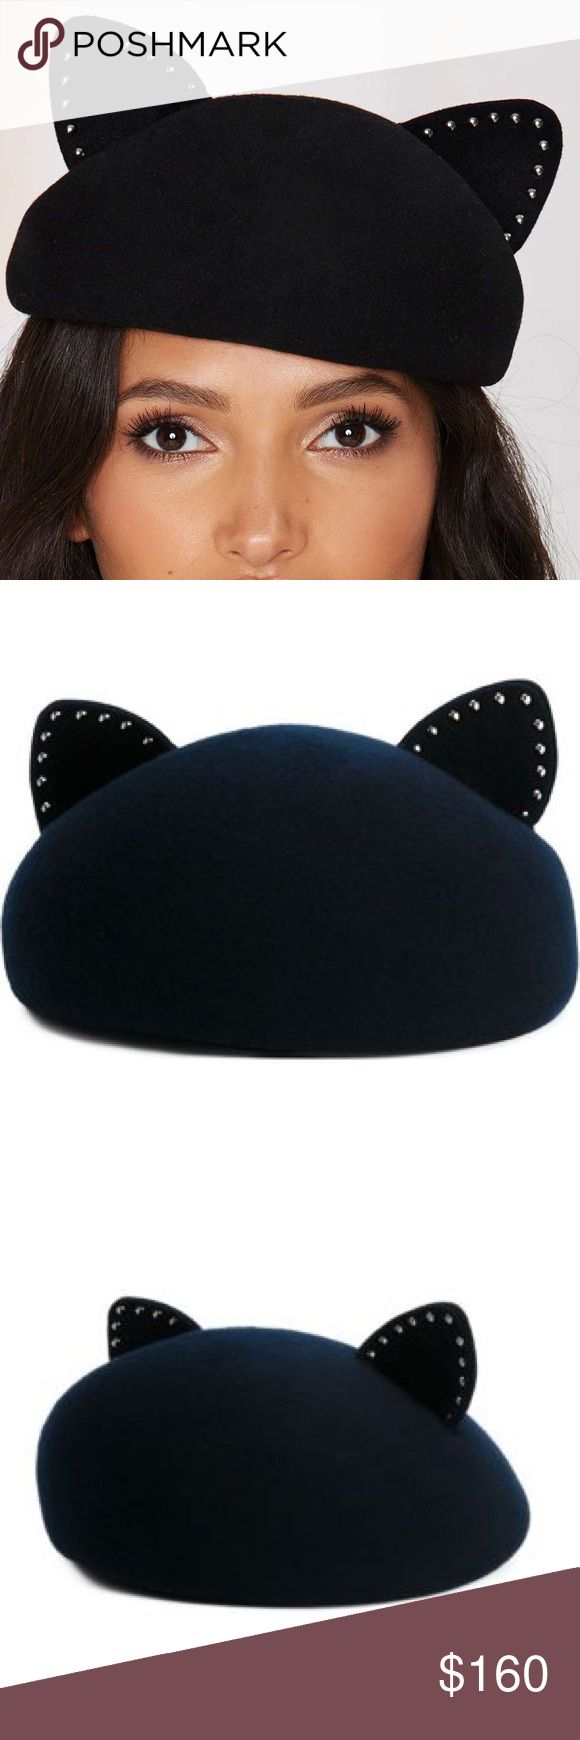 Eugenia Kim Caterina Wool Hat Eugenia Kim's Caterina Hat is made in black wool and features a cat silhouette, rounded shape, elastic chin strap, and studded ears. Eugenia Kim Accessories Hats